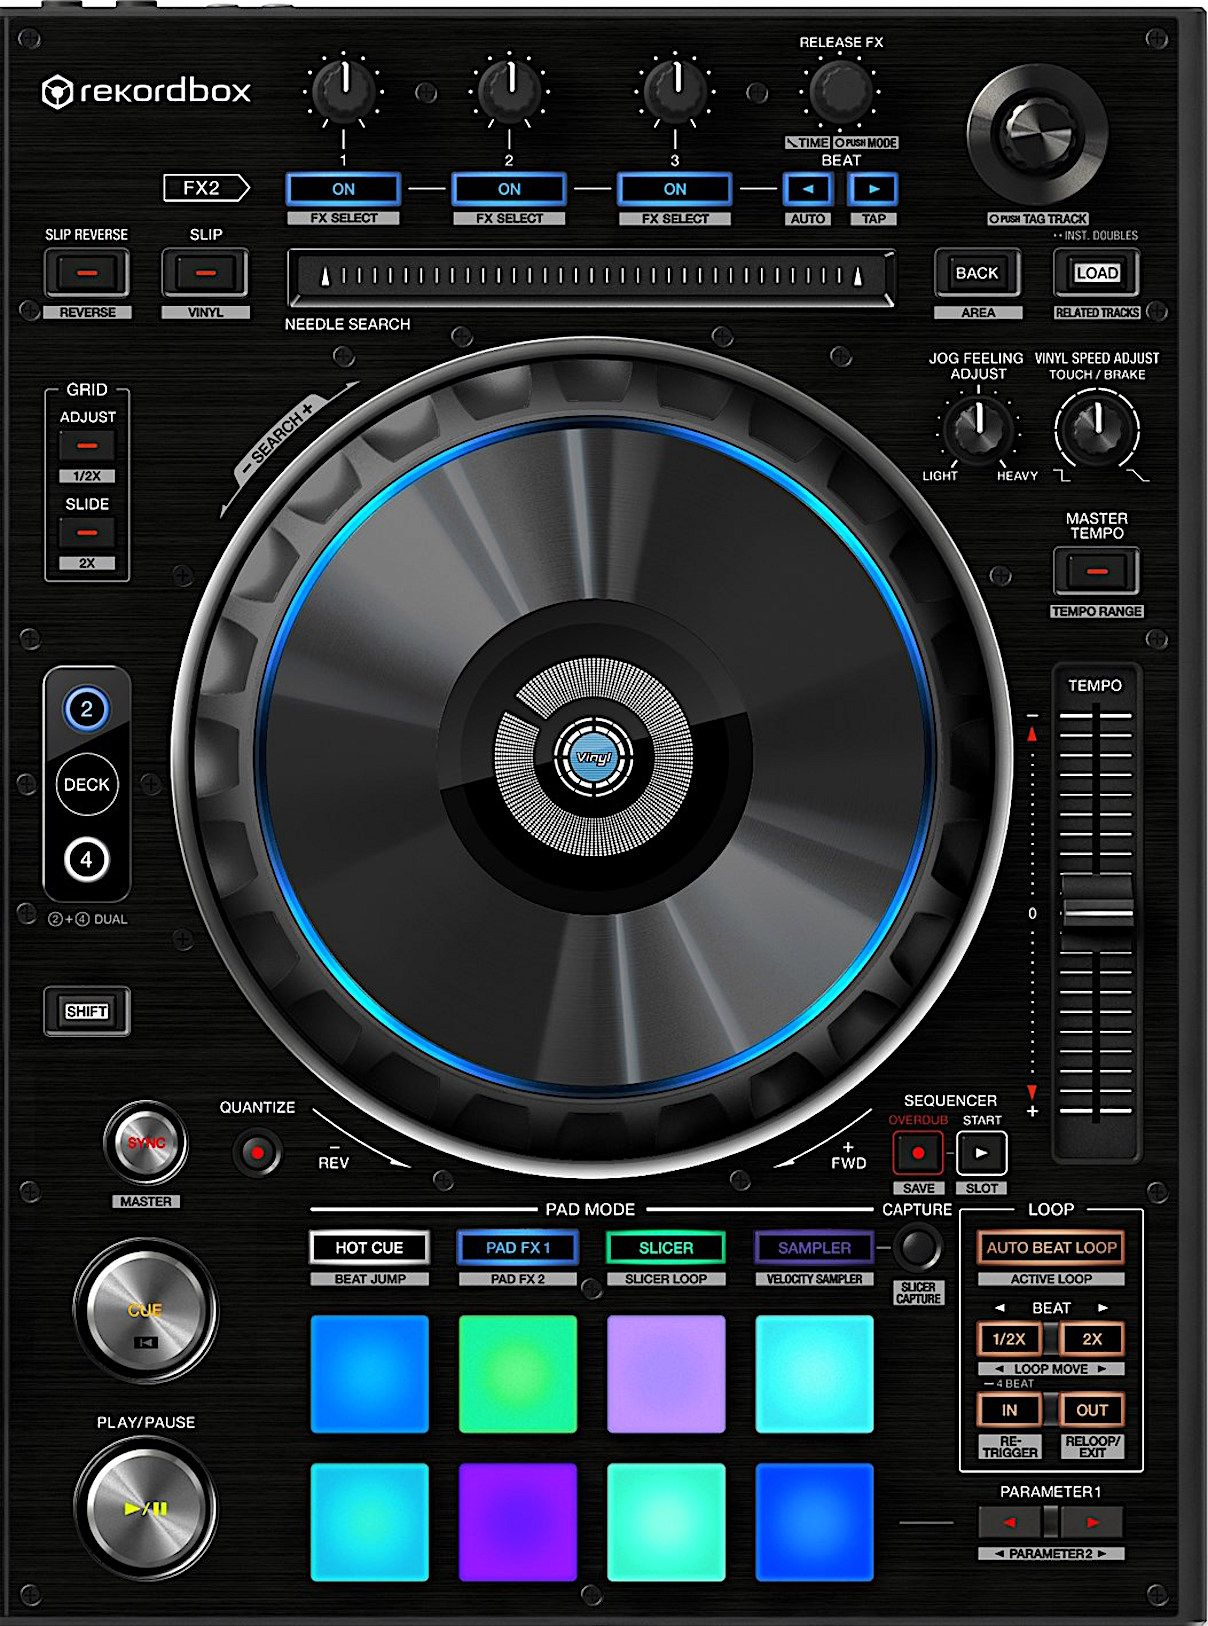 Pioneer Dj Ddj Rz Controller Review With Images Pioneer Dj